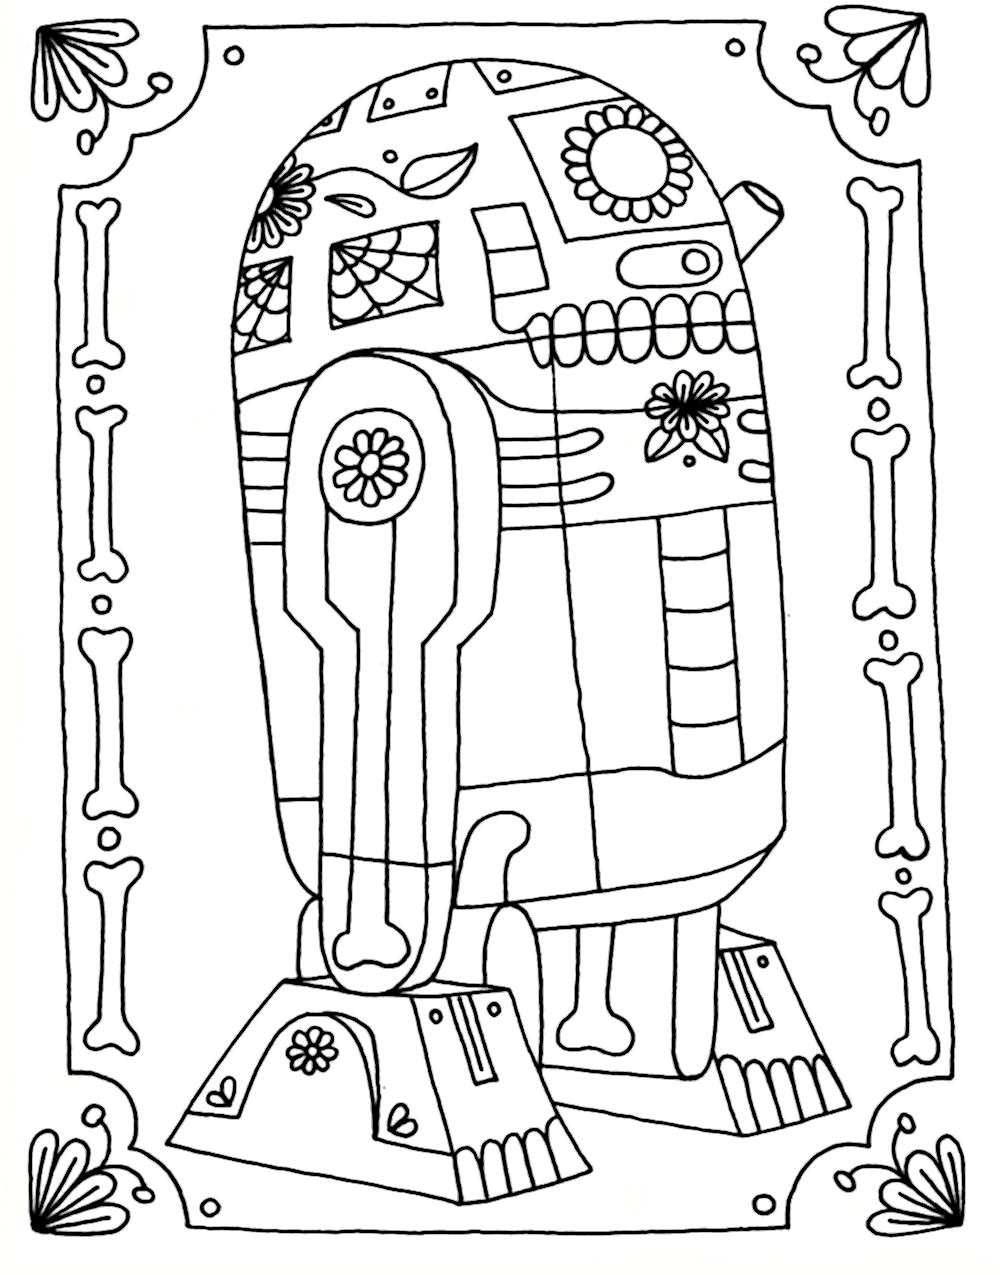 1000x1275 M And M Coloring Pages Yucca Flats, N M Wenchkin's Coloring